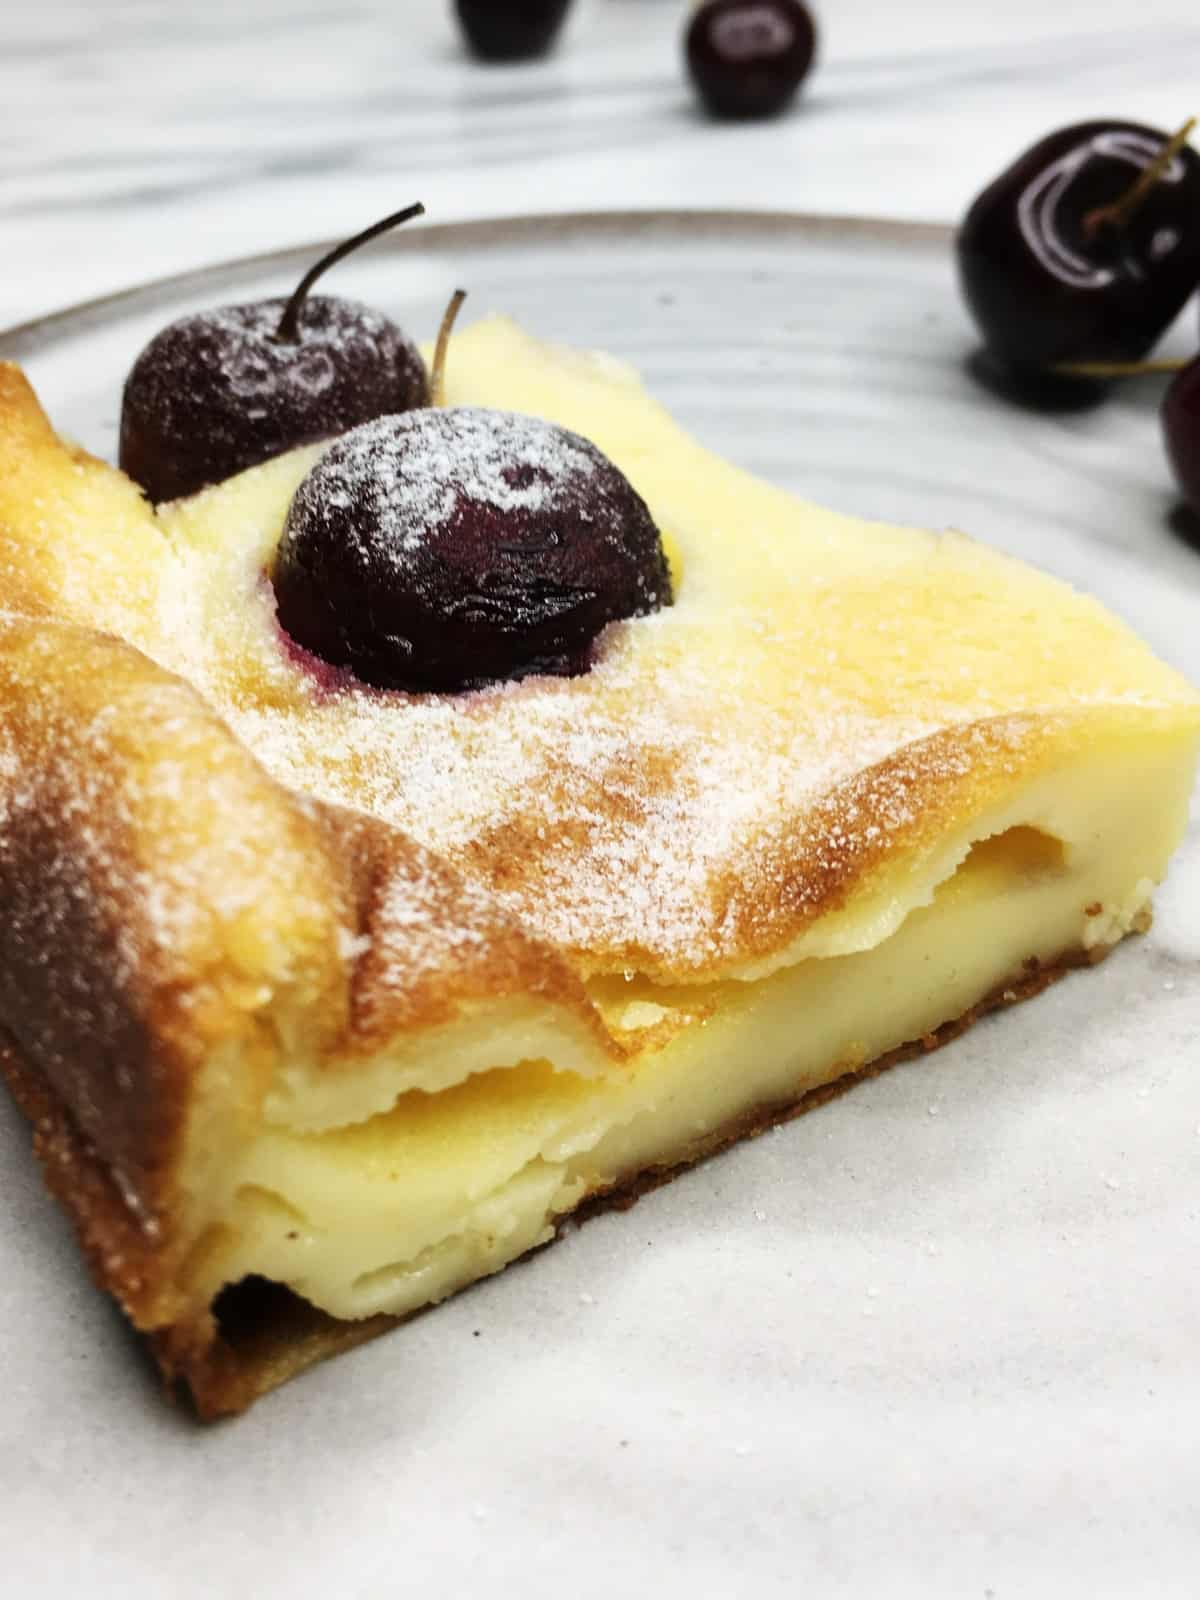 A square piece of French cherry dessert with cherries on a grey plate